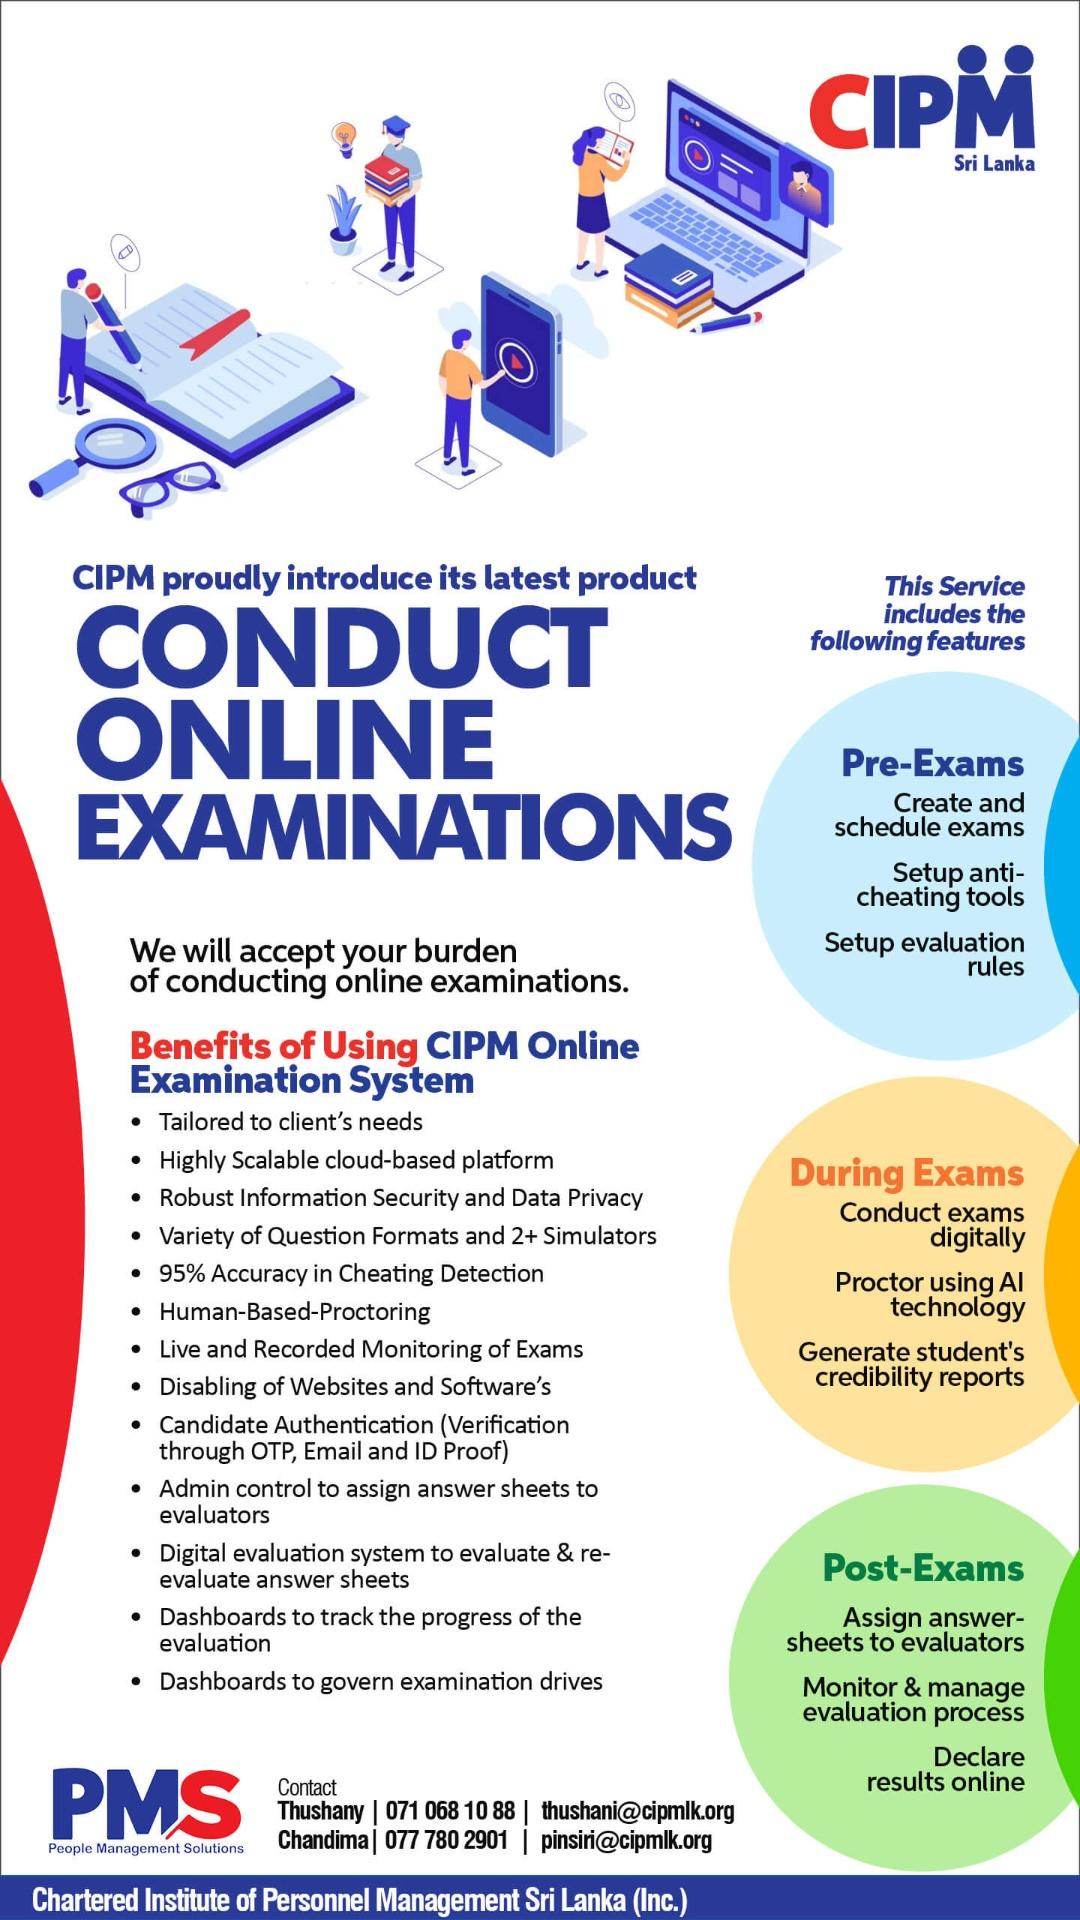 We will accept your burden of conducting an online examination